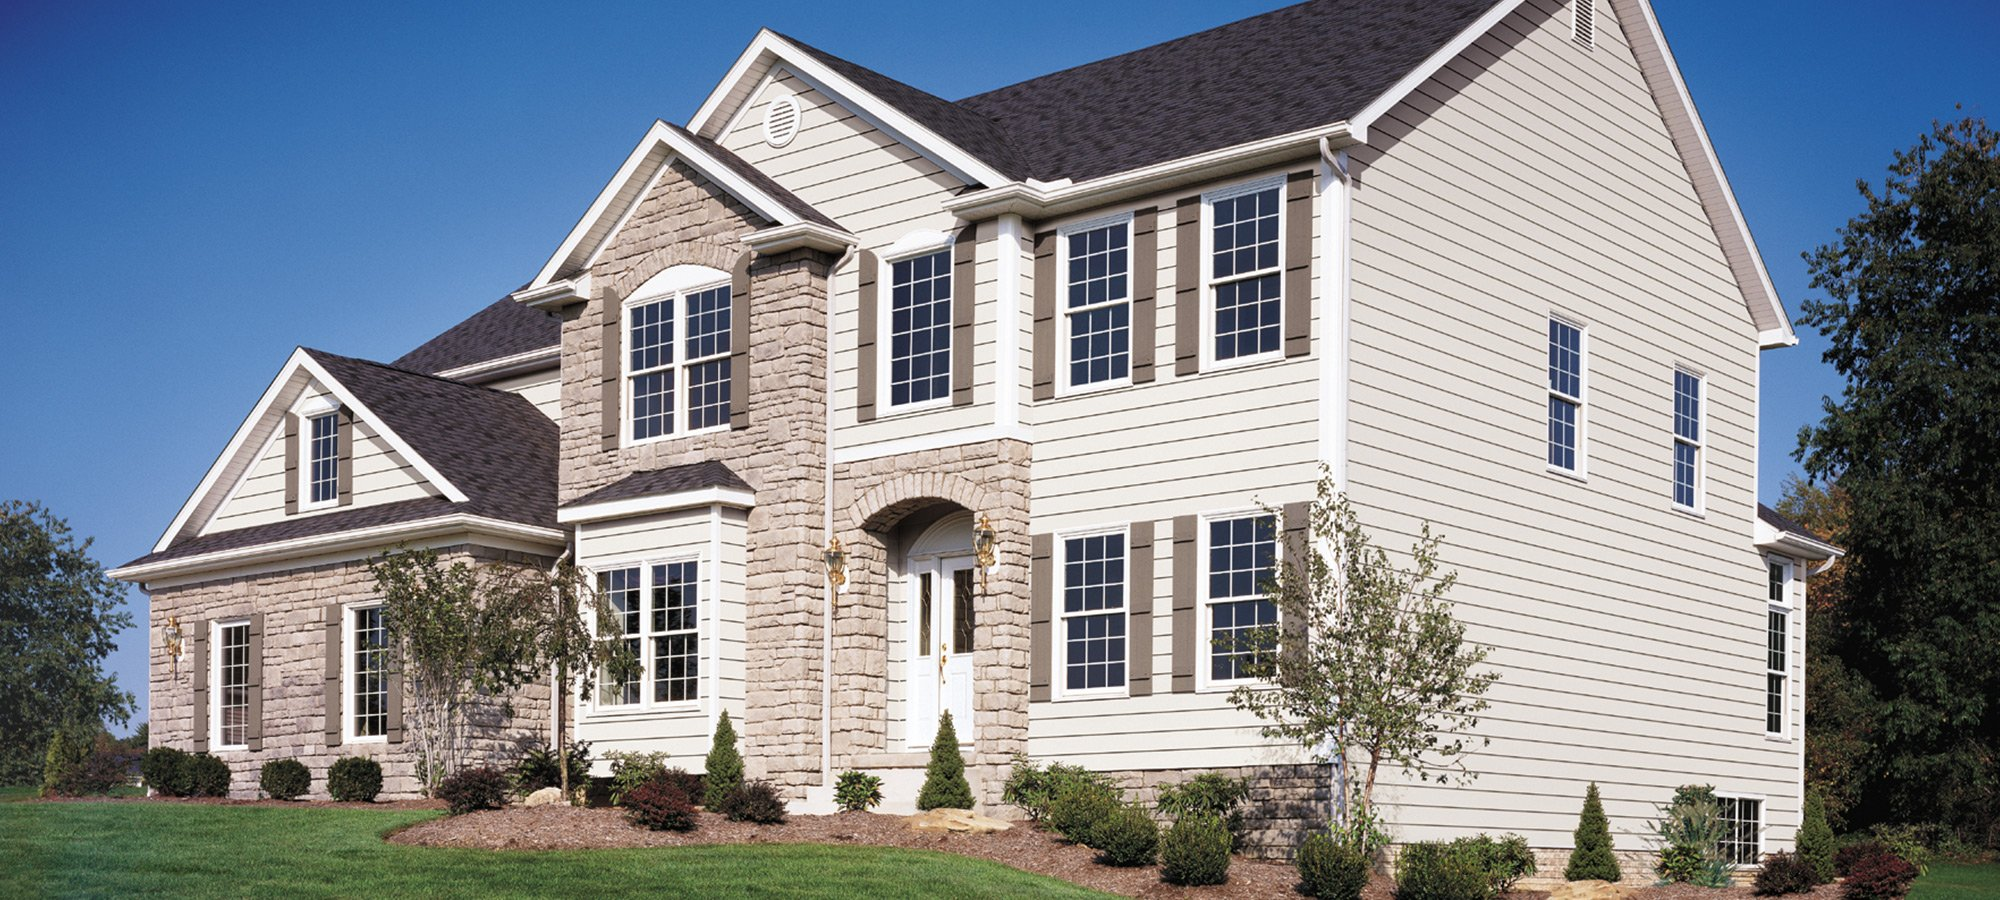 Siding Pros in Long Island